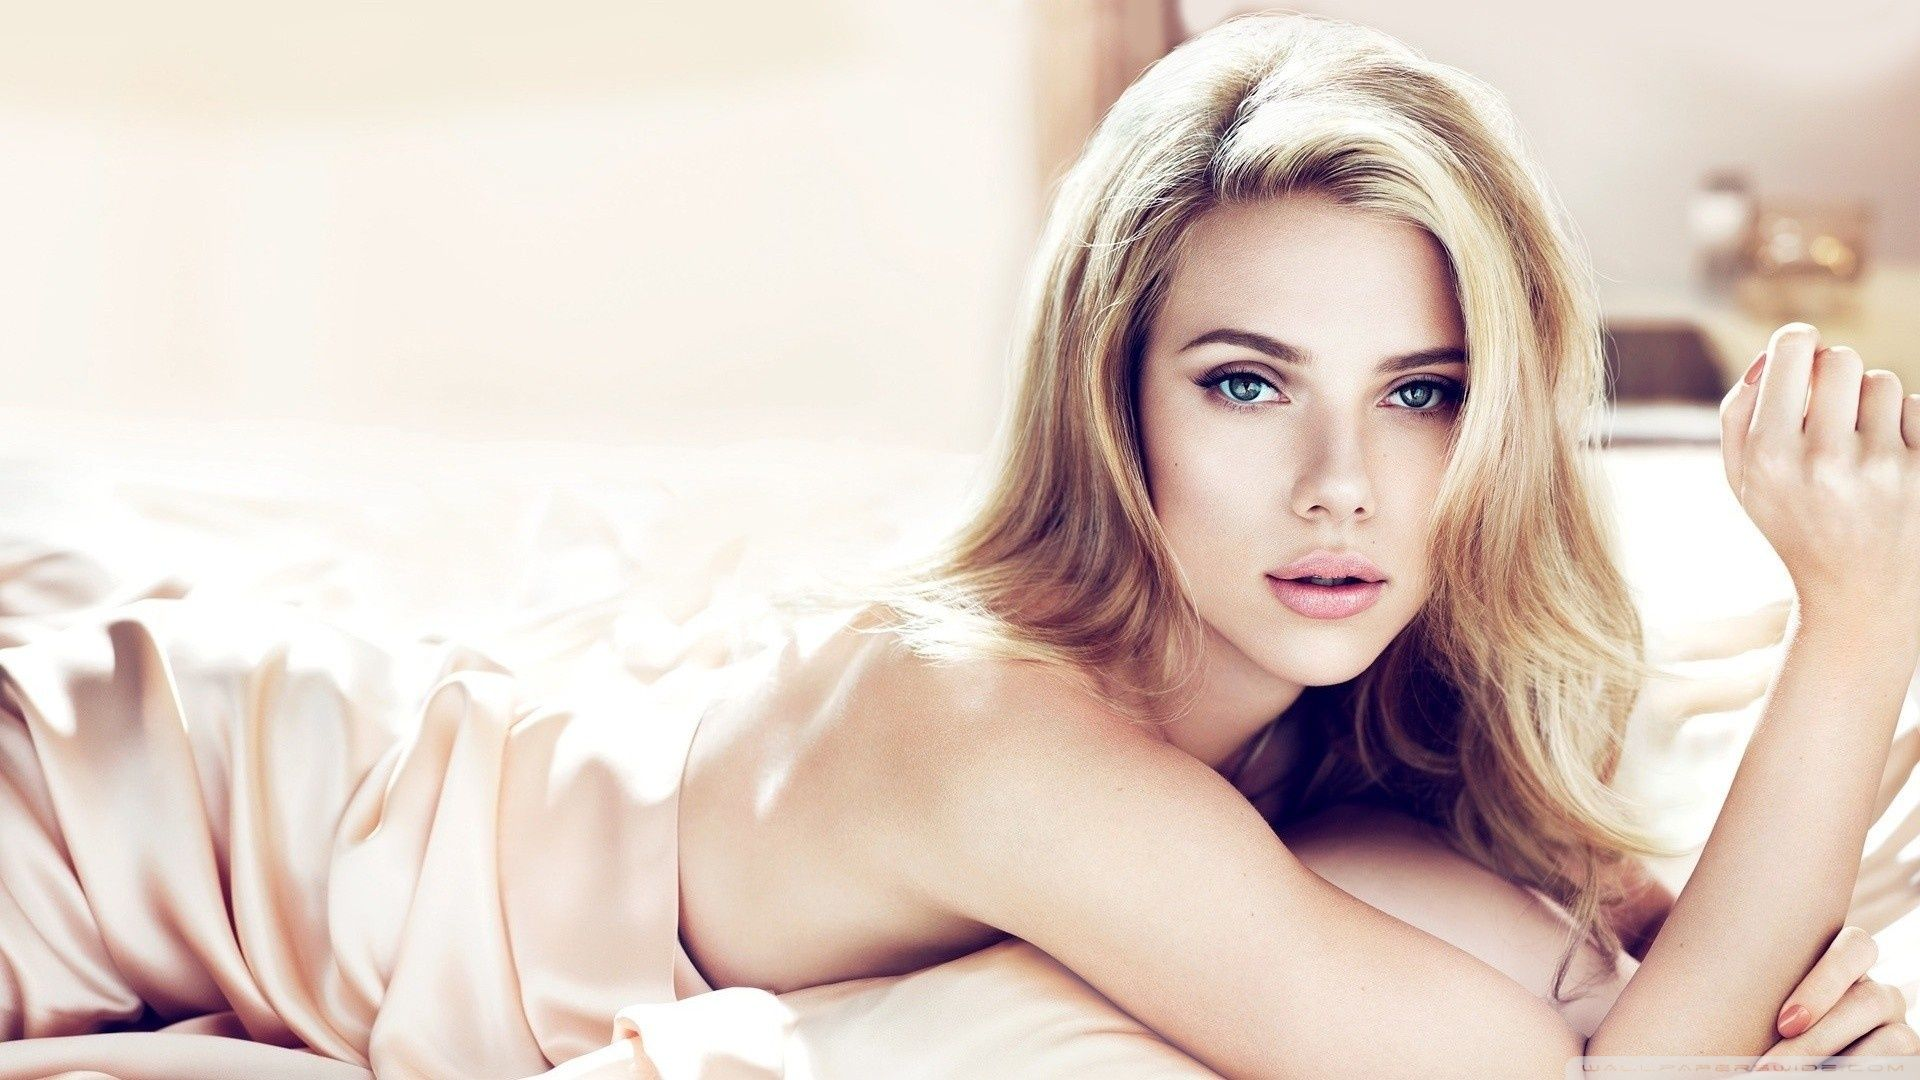 Scarlett Johansson Wallpapers - Top Free Scarlett Johansson Backgrounds -  WallpaperAccess